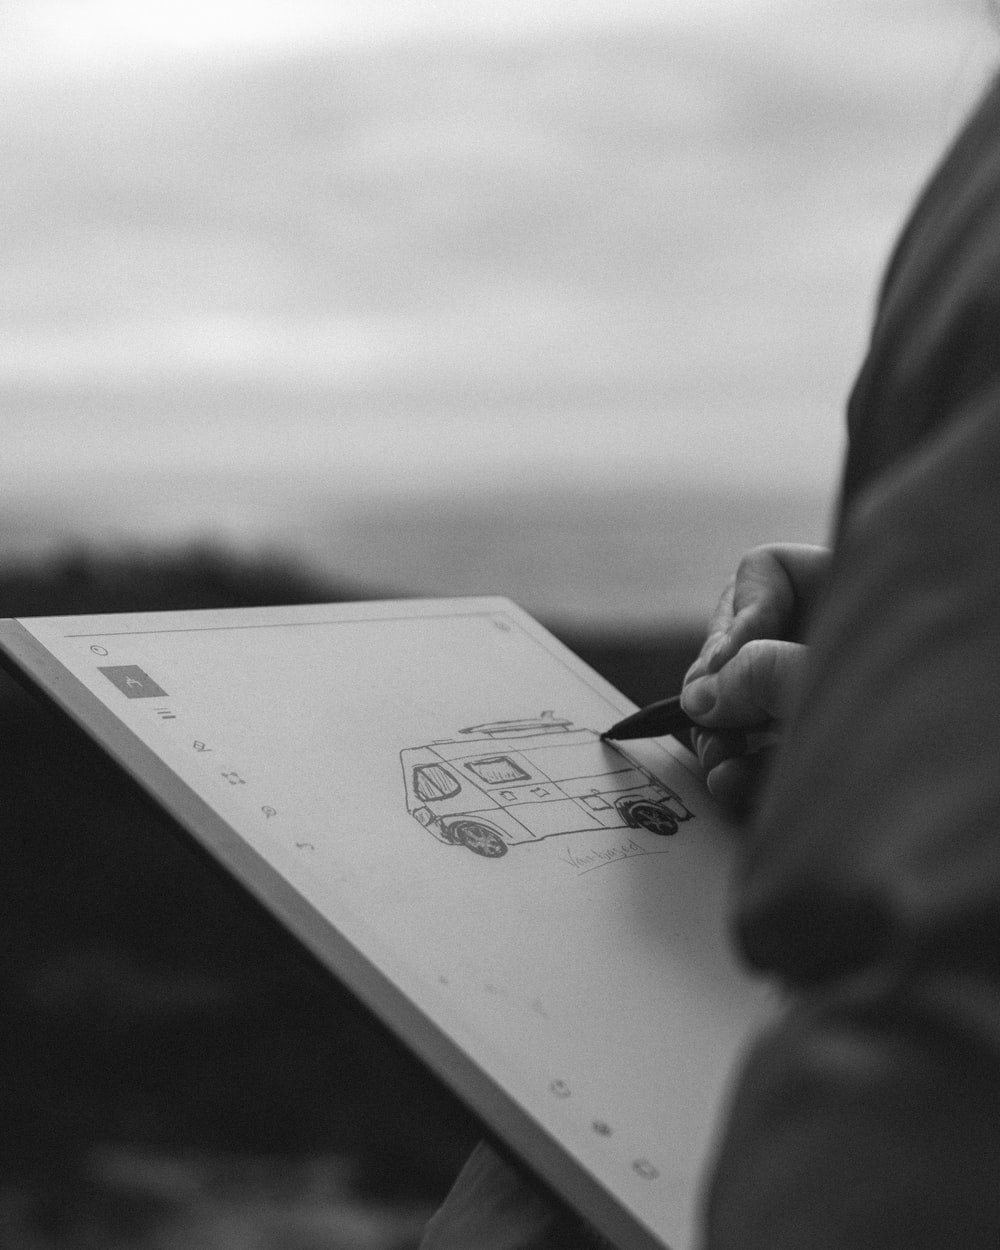 grayscale photo of person holding pen writing on white paper